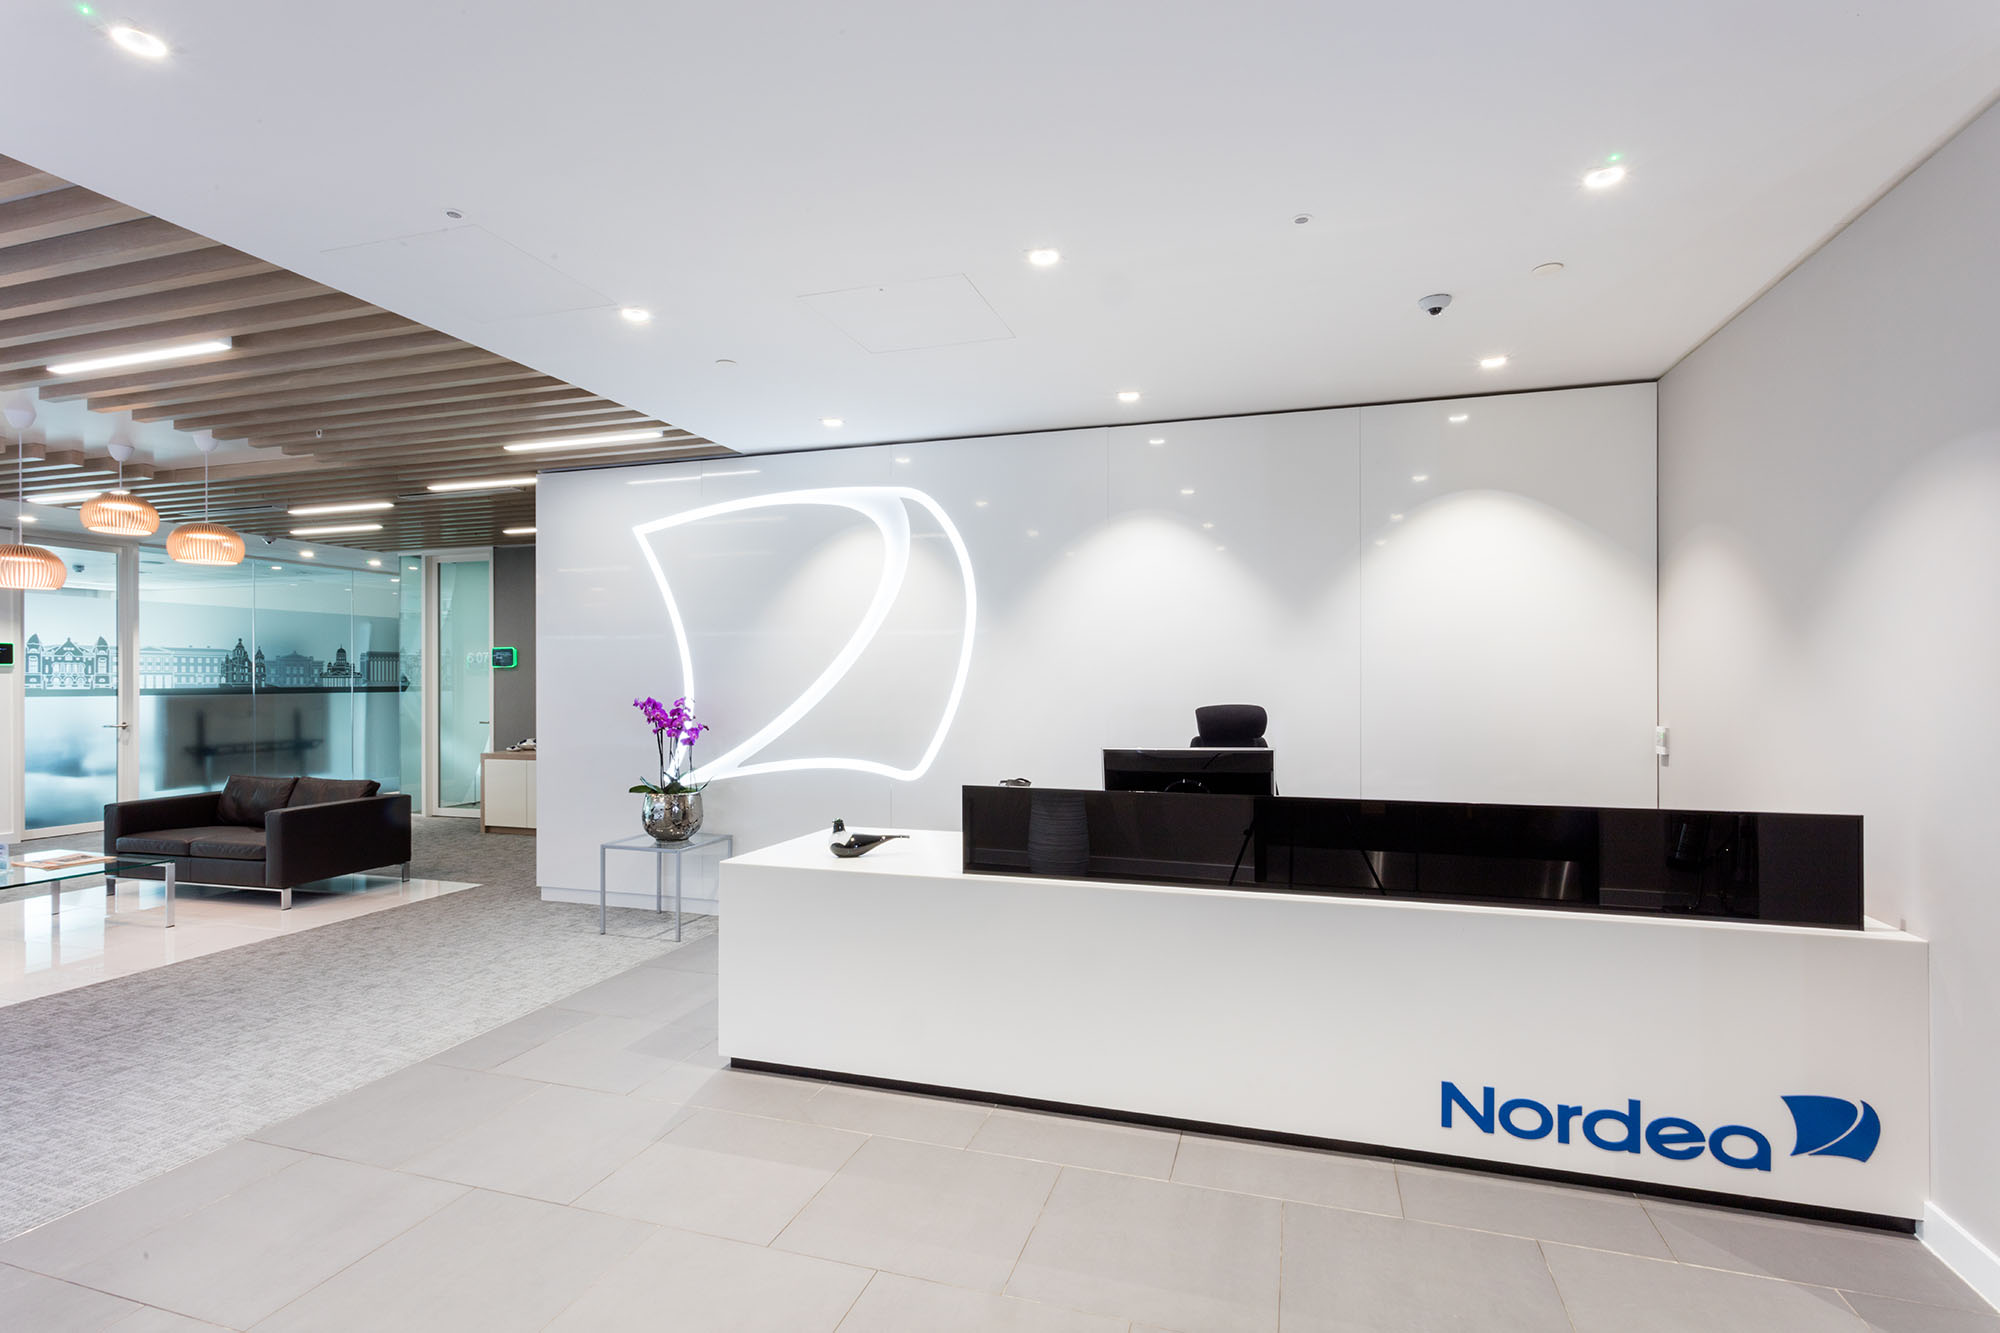 nordea reception